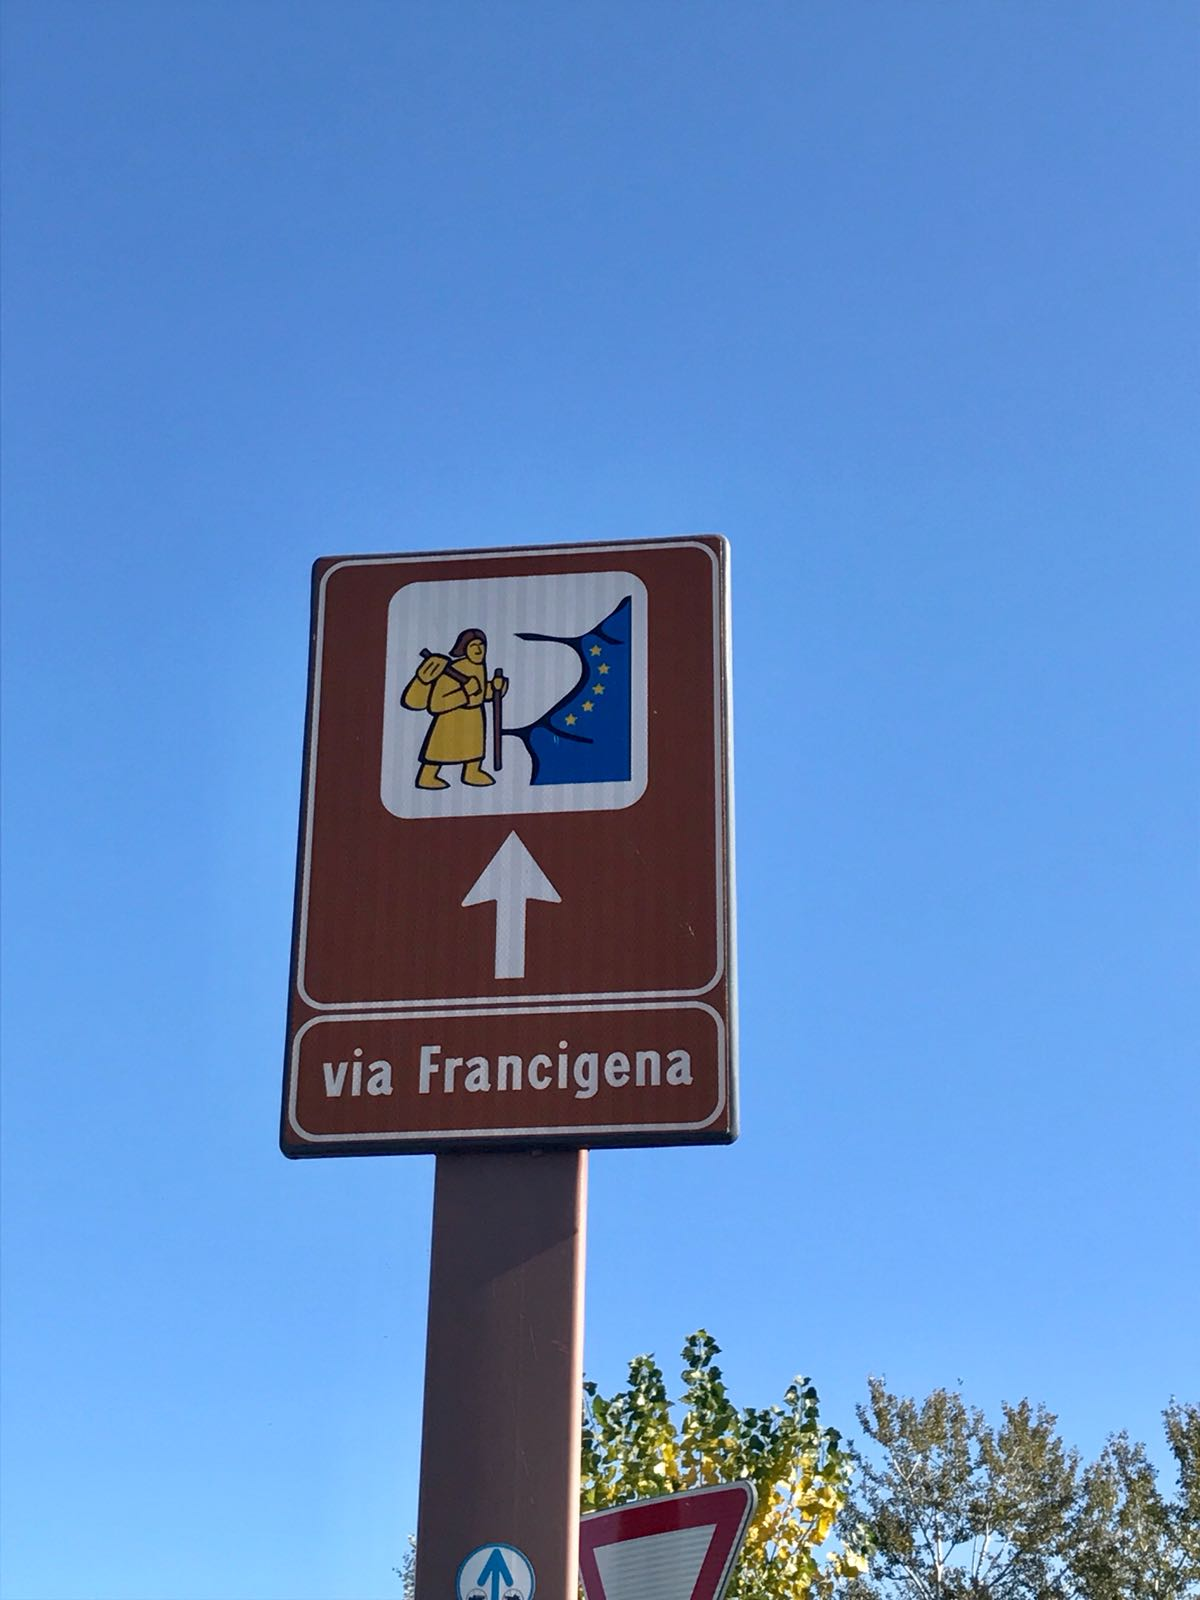 Francigena road sign showing the logo for the route of a cartoon pilgrim next to some of the EU stars